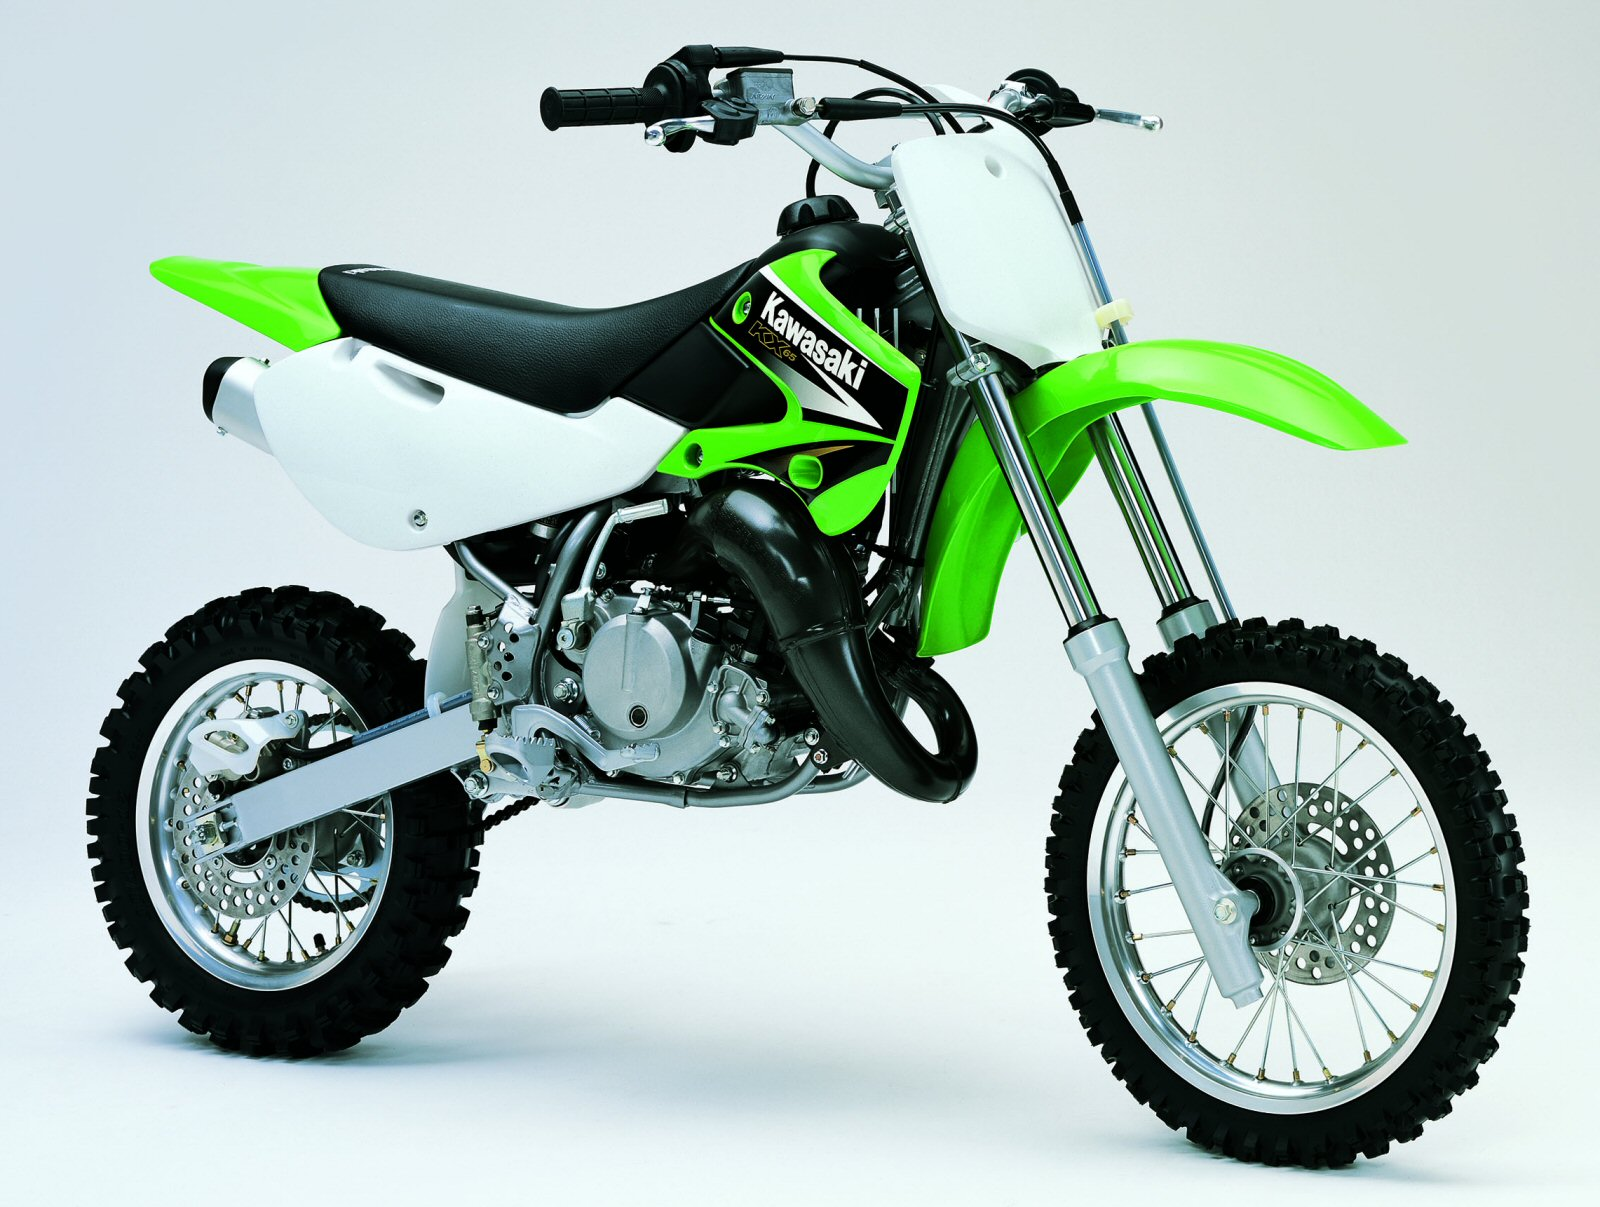 kawasaki kx 65 car interior design. Black Bedroom Furniture Sets. Home Design Ideas